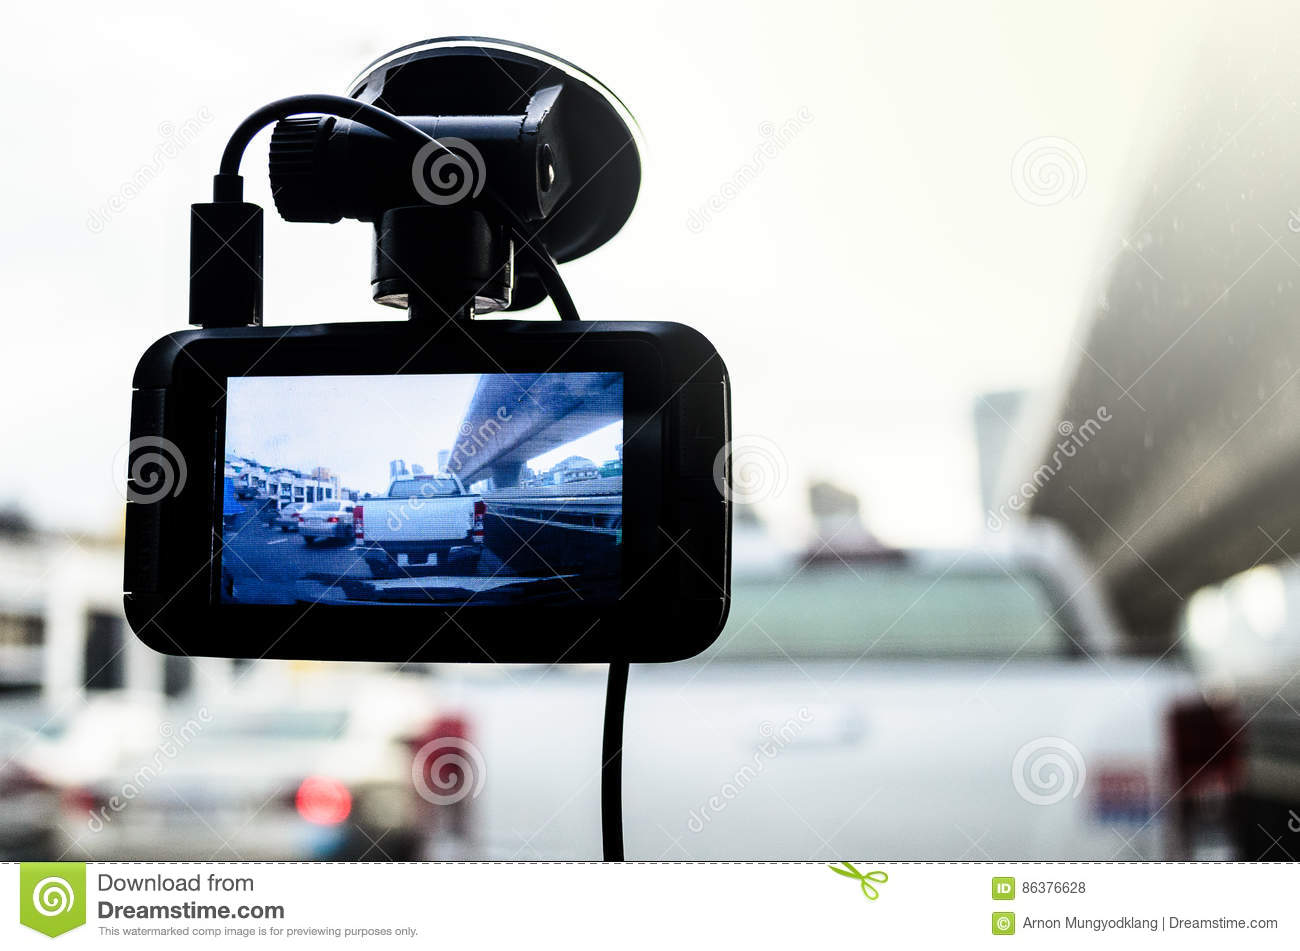 The Camera in Car.